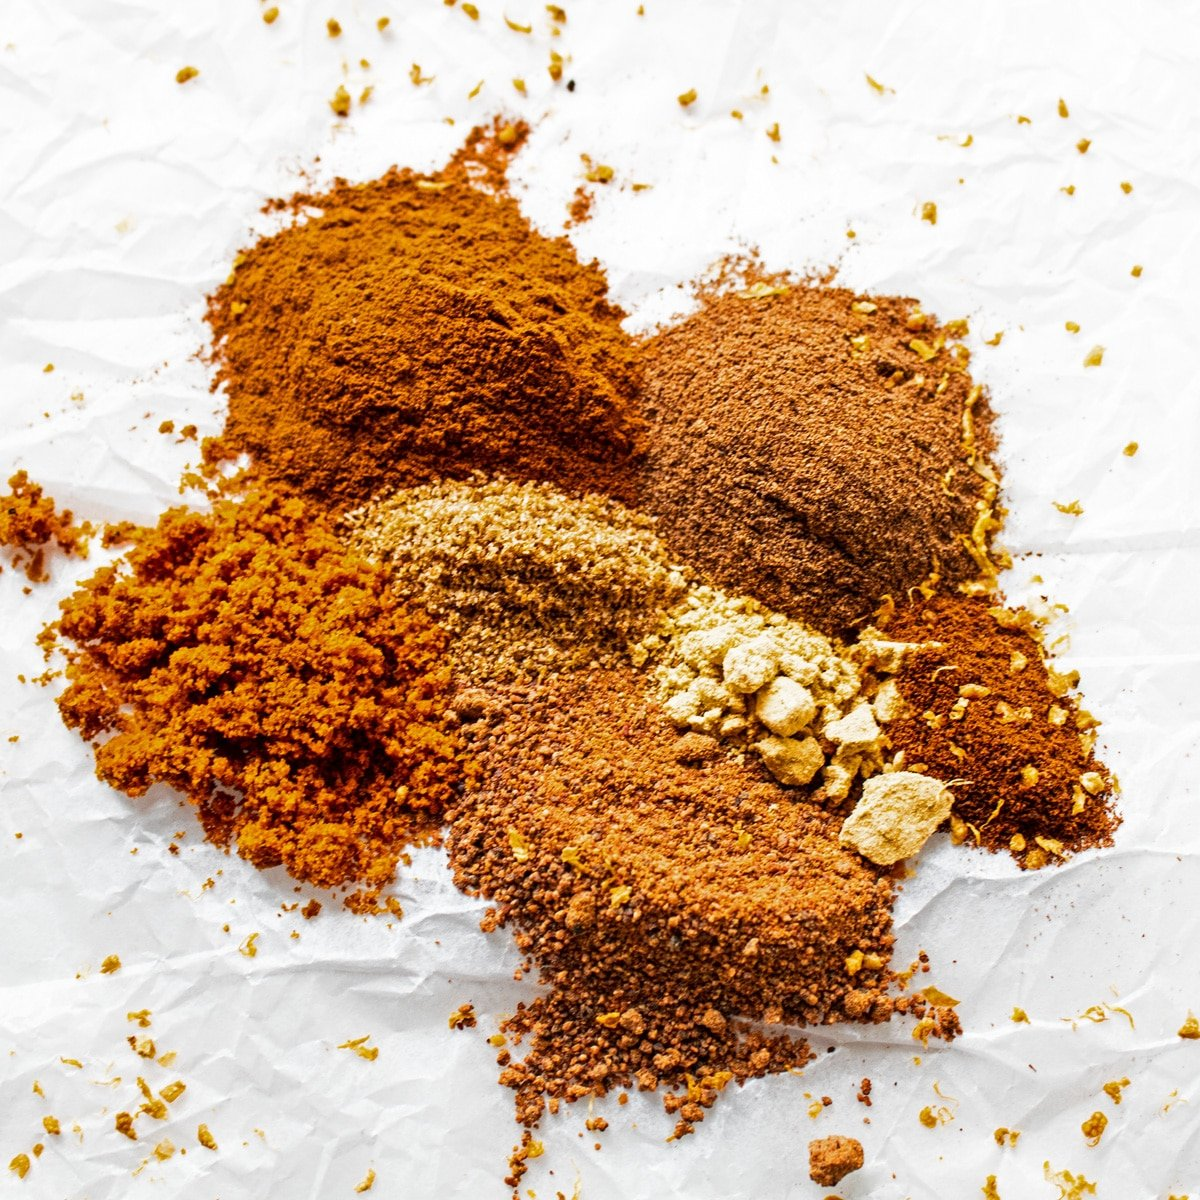 Mixed spice ingredients piled on white parchment paper.